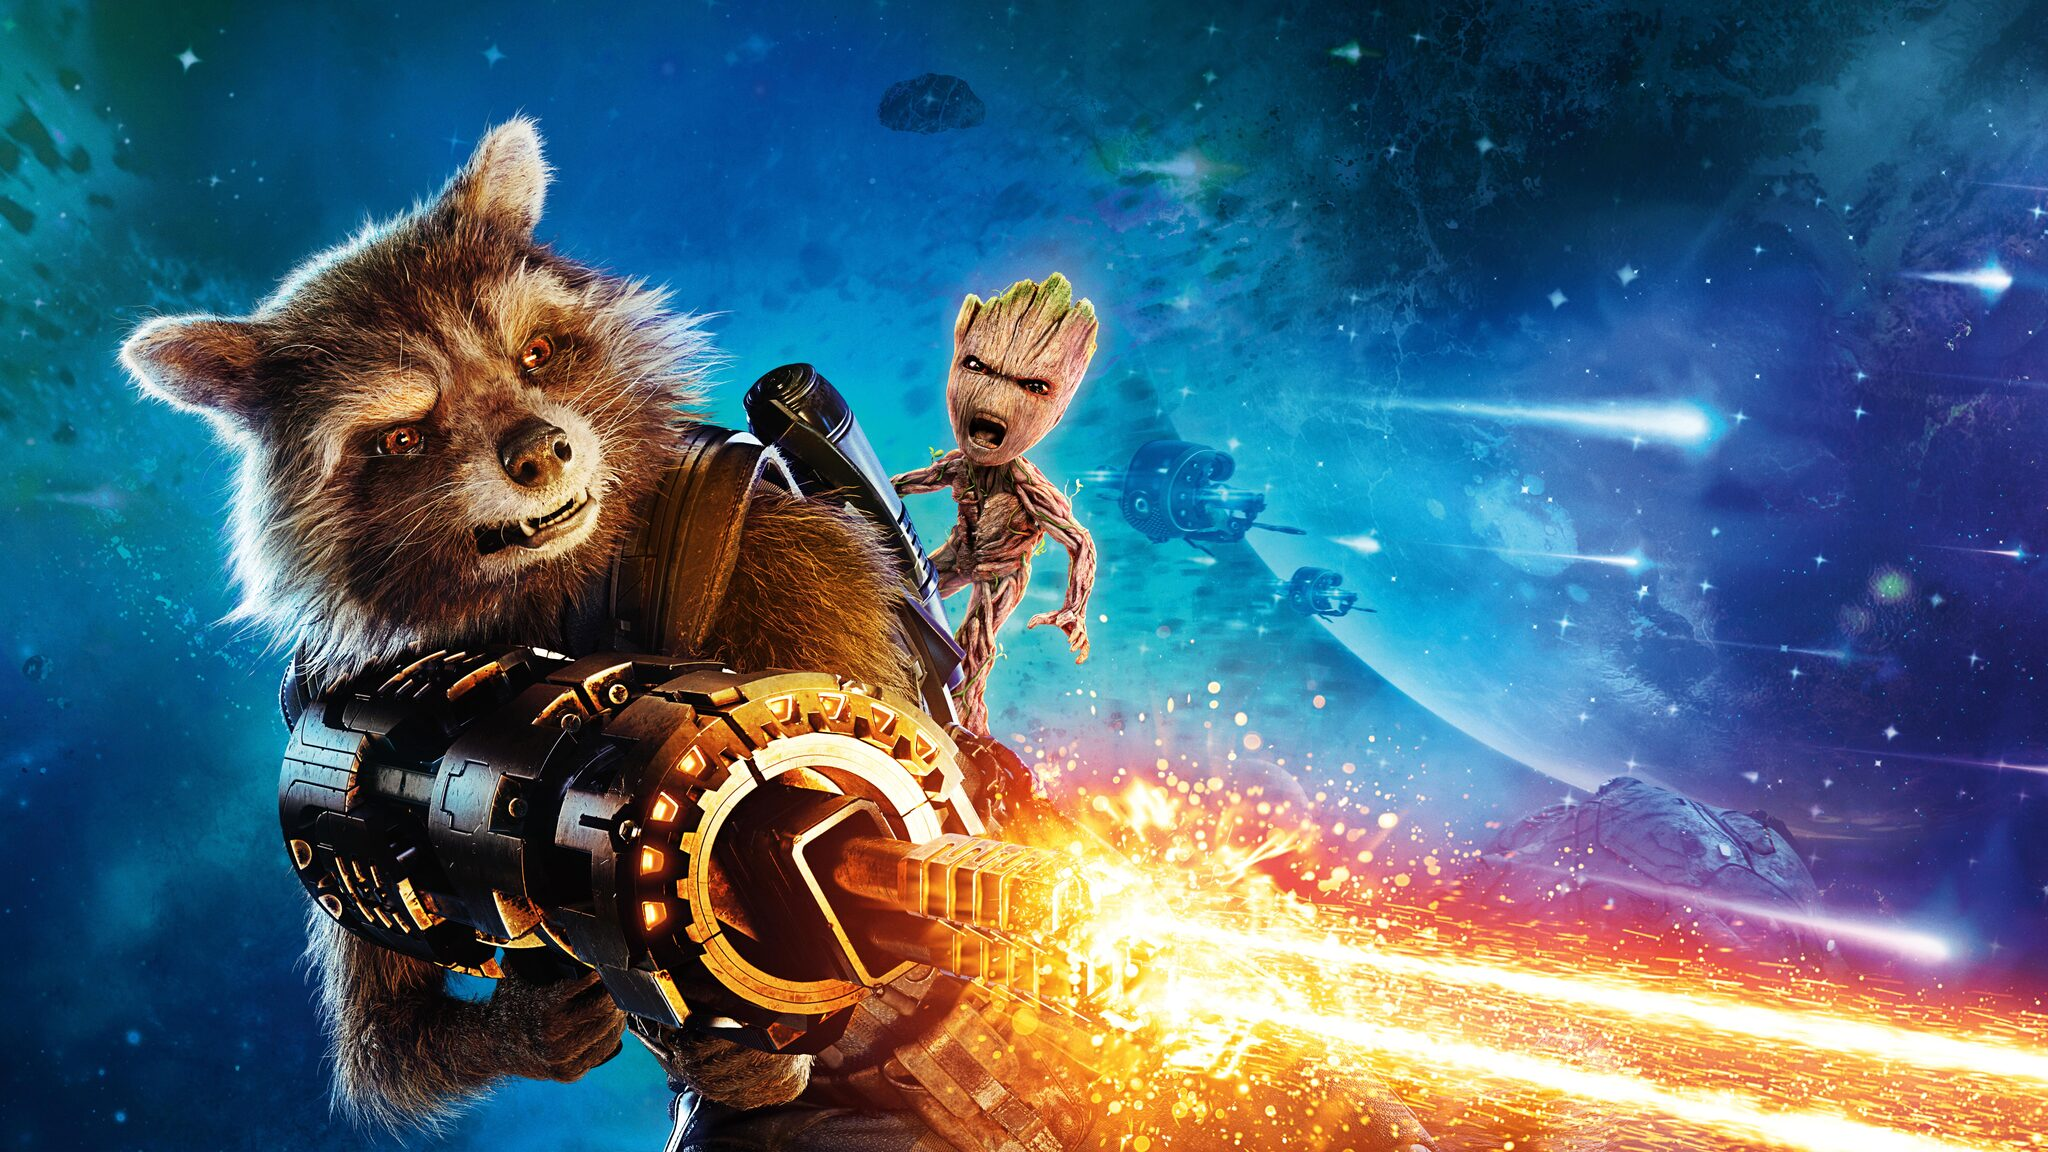 2048x1152 Baby Groot And Rocket Raccoon Guardians Of The